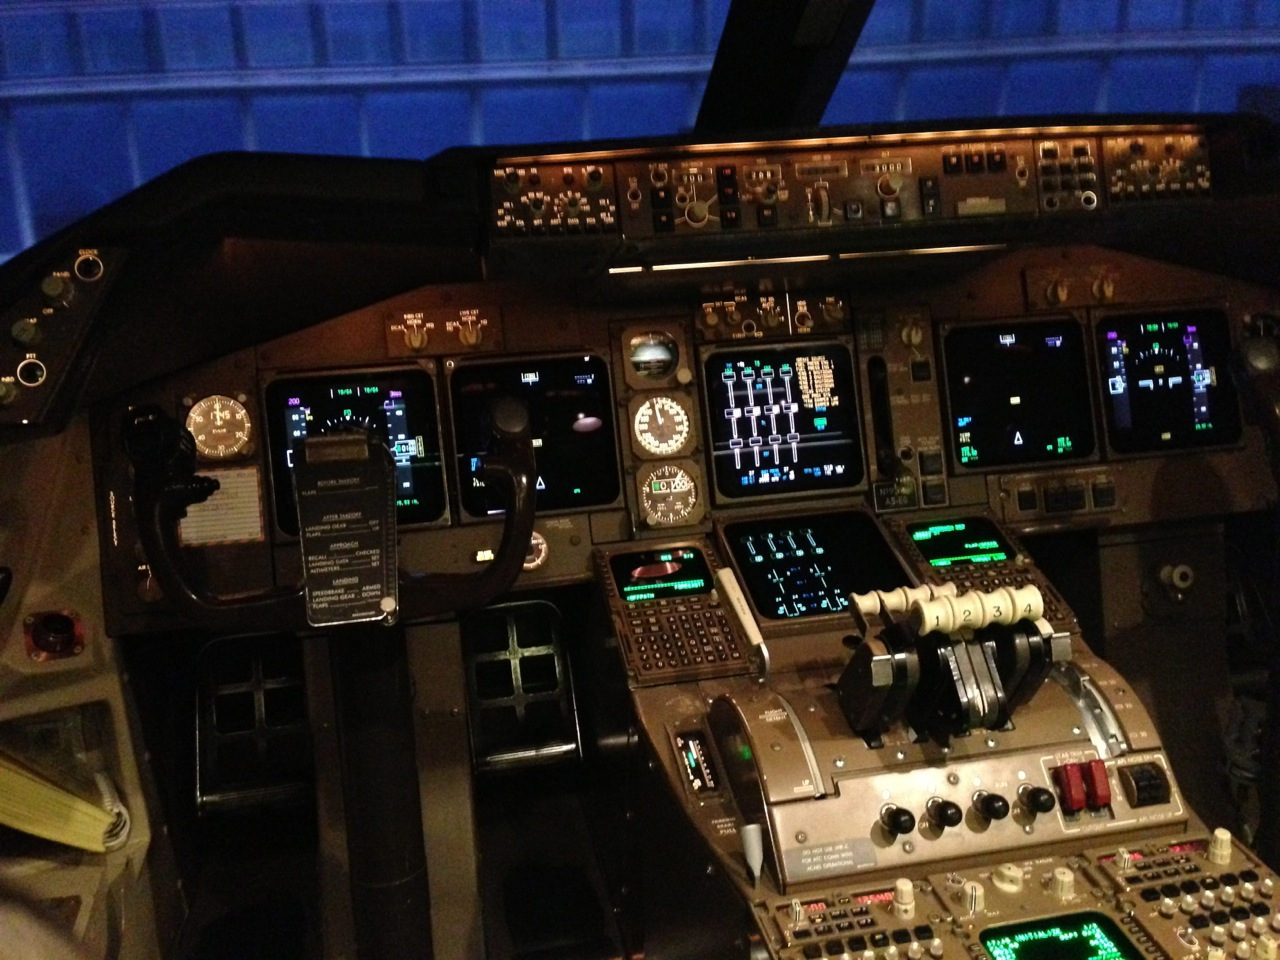 Practicing Approaches into Heathrow in Boeing 747 Flight Simulator